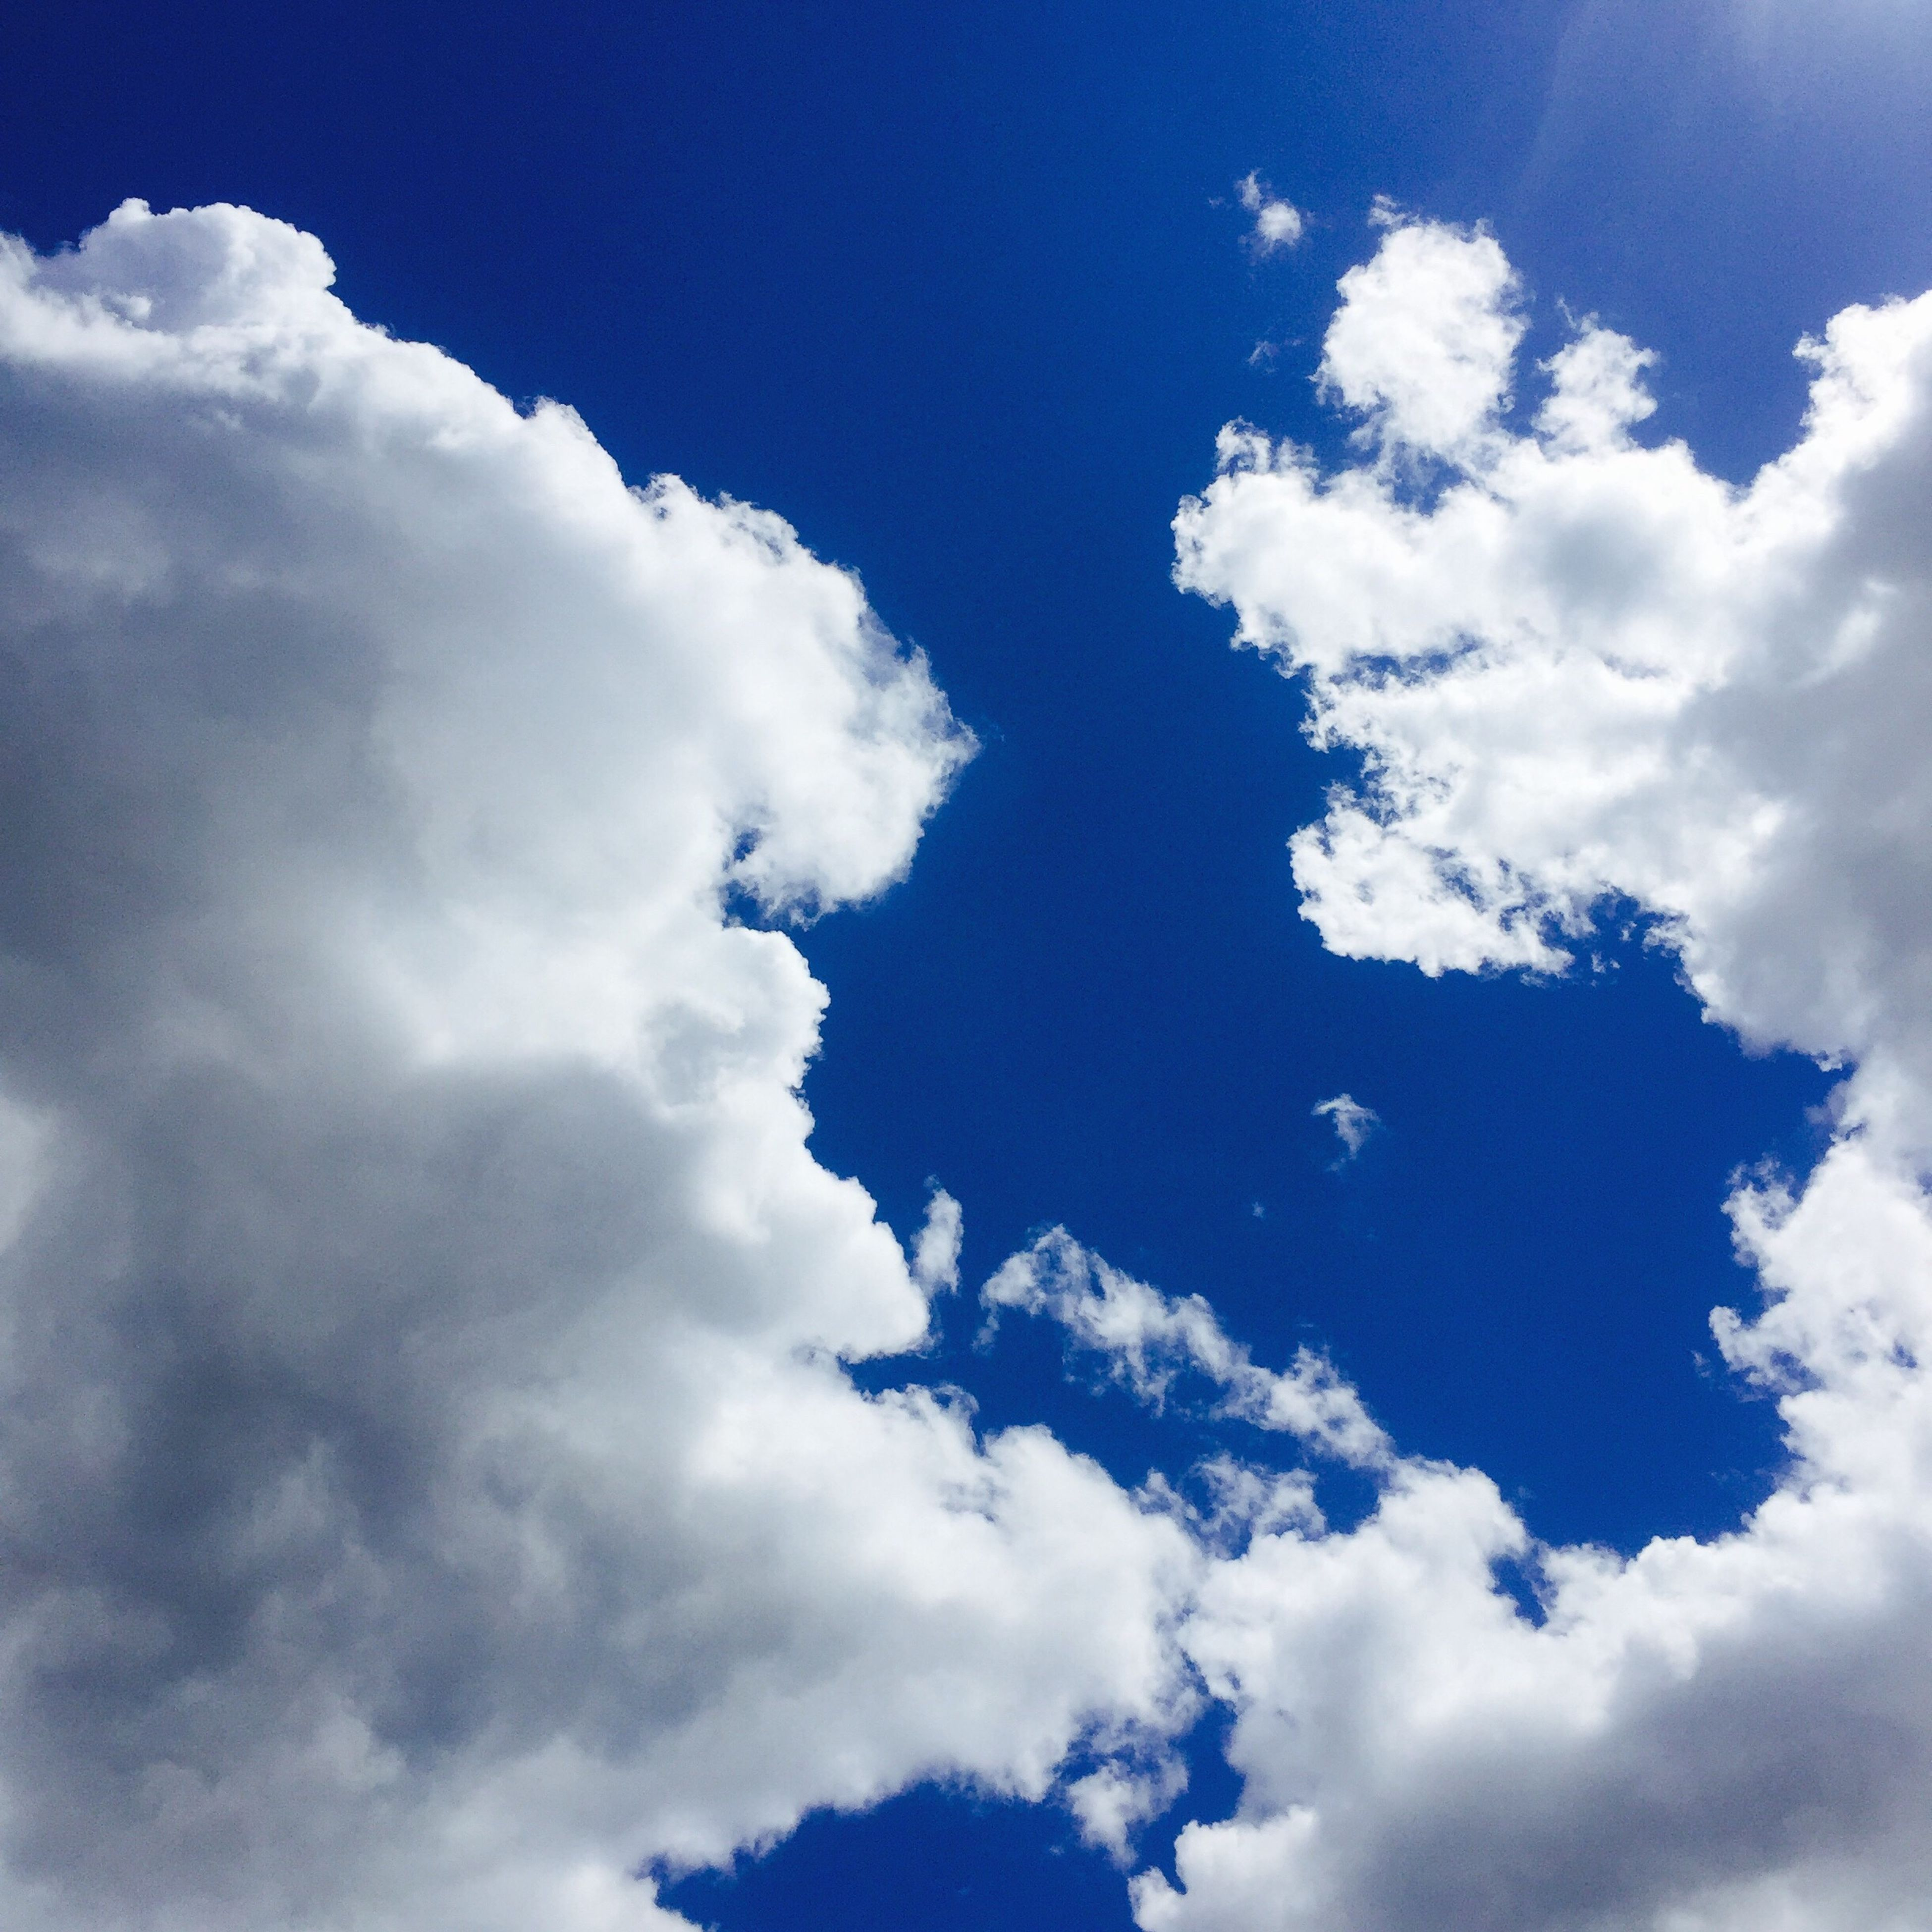 low angle view, sky, cloud - sky, flying, blue, nature, beauty in nature, sky only, cloud, tranquility, cloudy, animal themes, scenics, bird, white color, mid-air, day, cloudscape, tranquil scene, outdoors